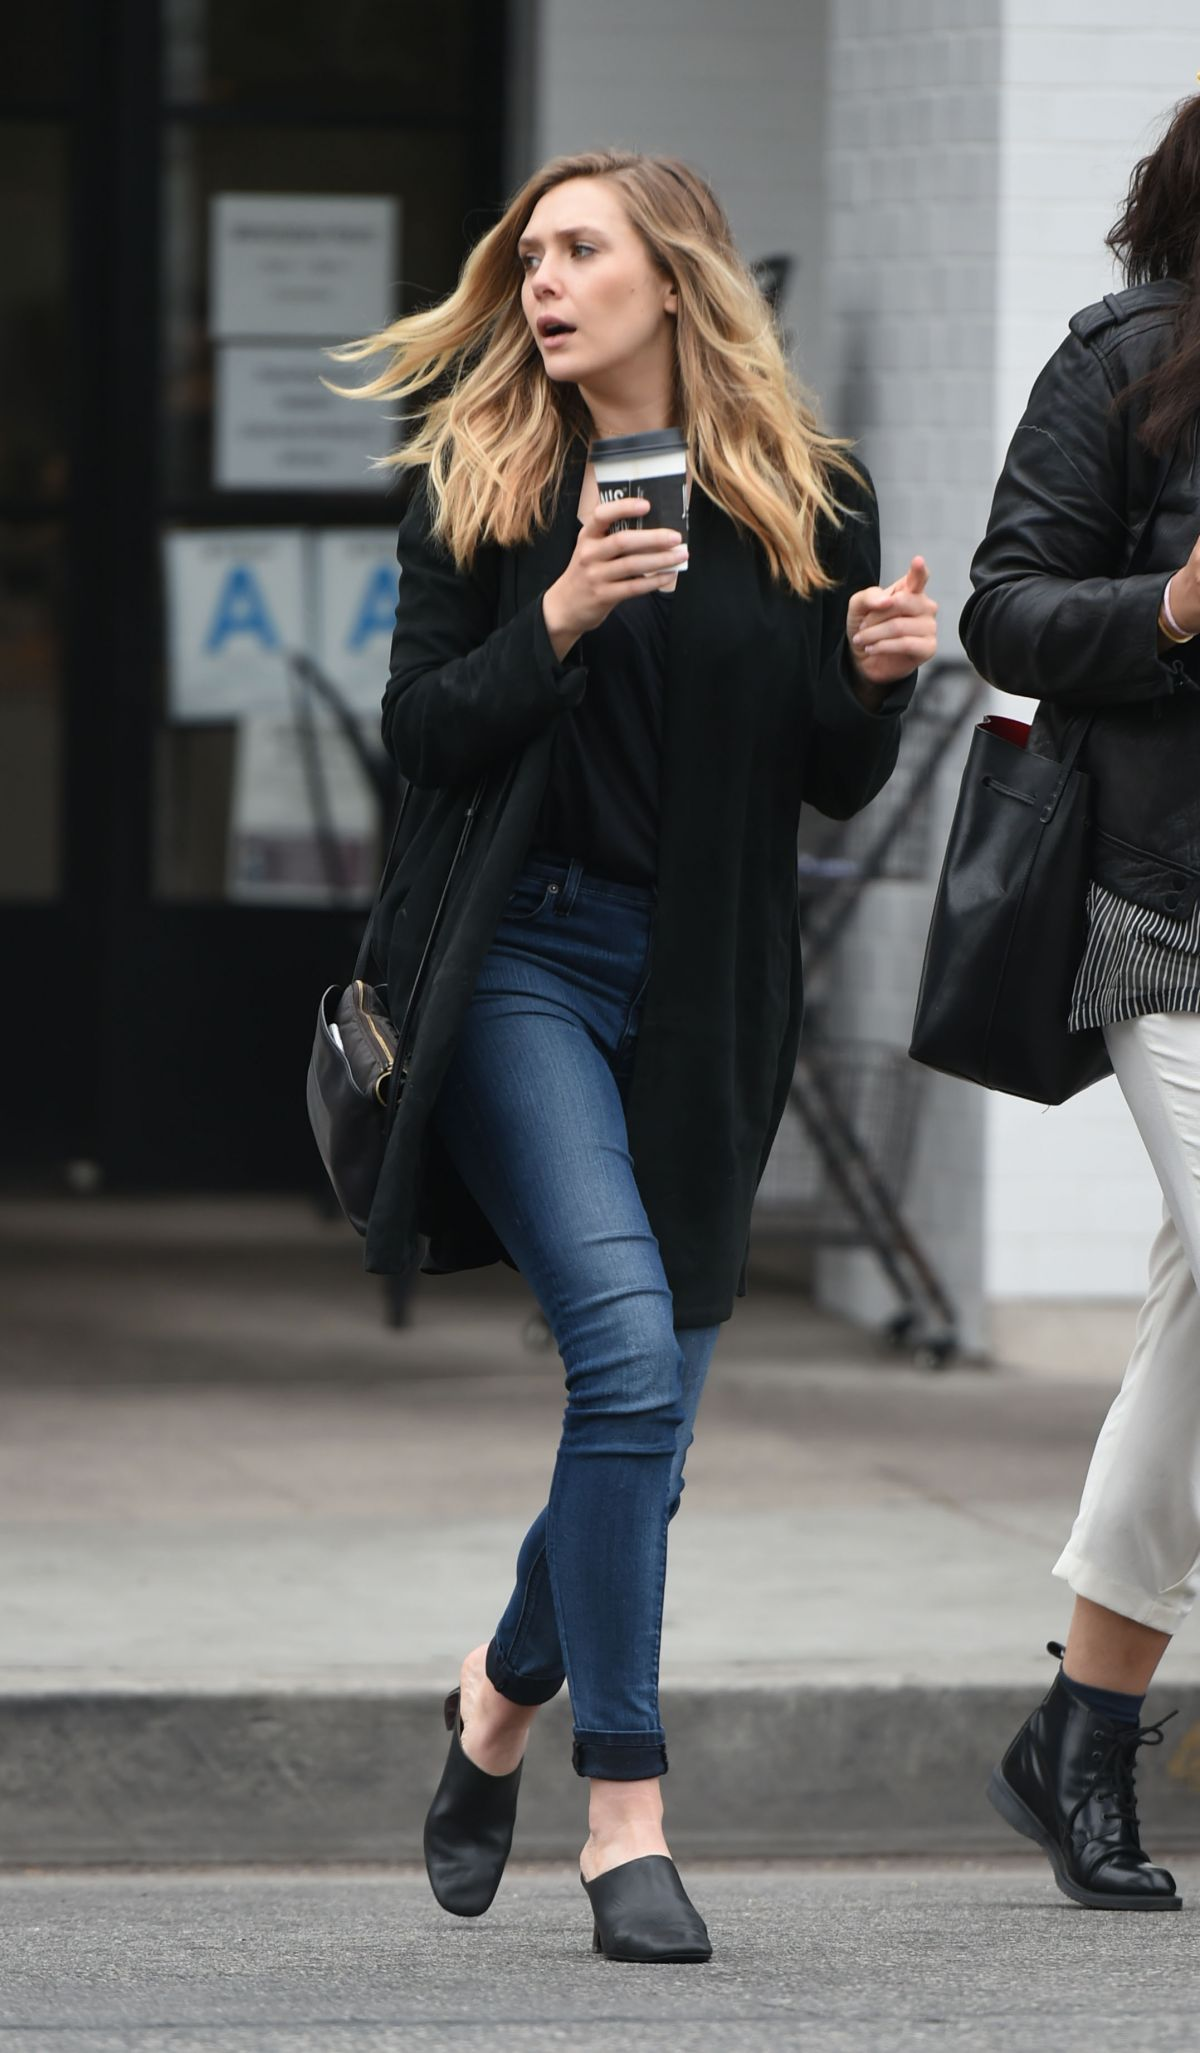 elizabeth olsen out and about in los angeles 05192016